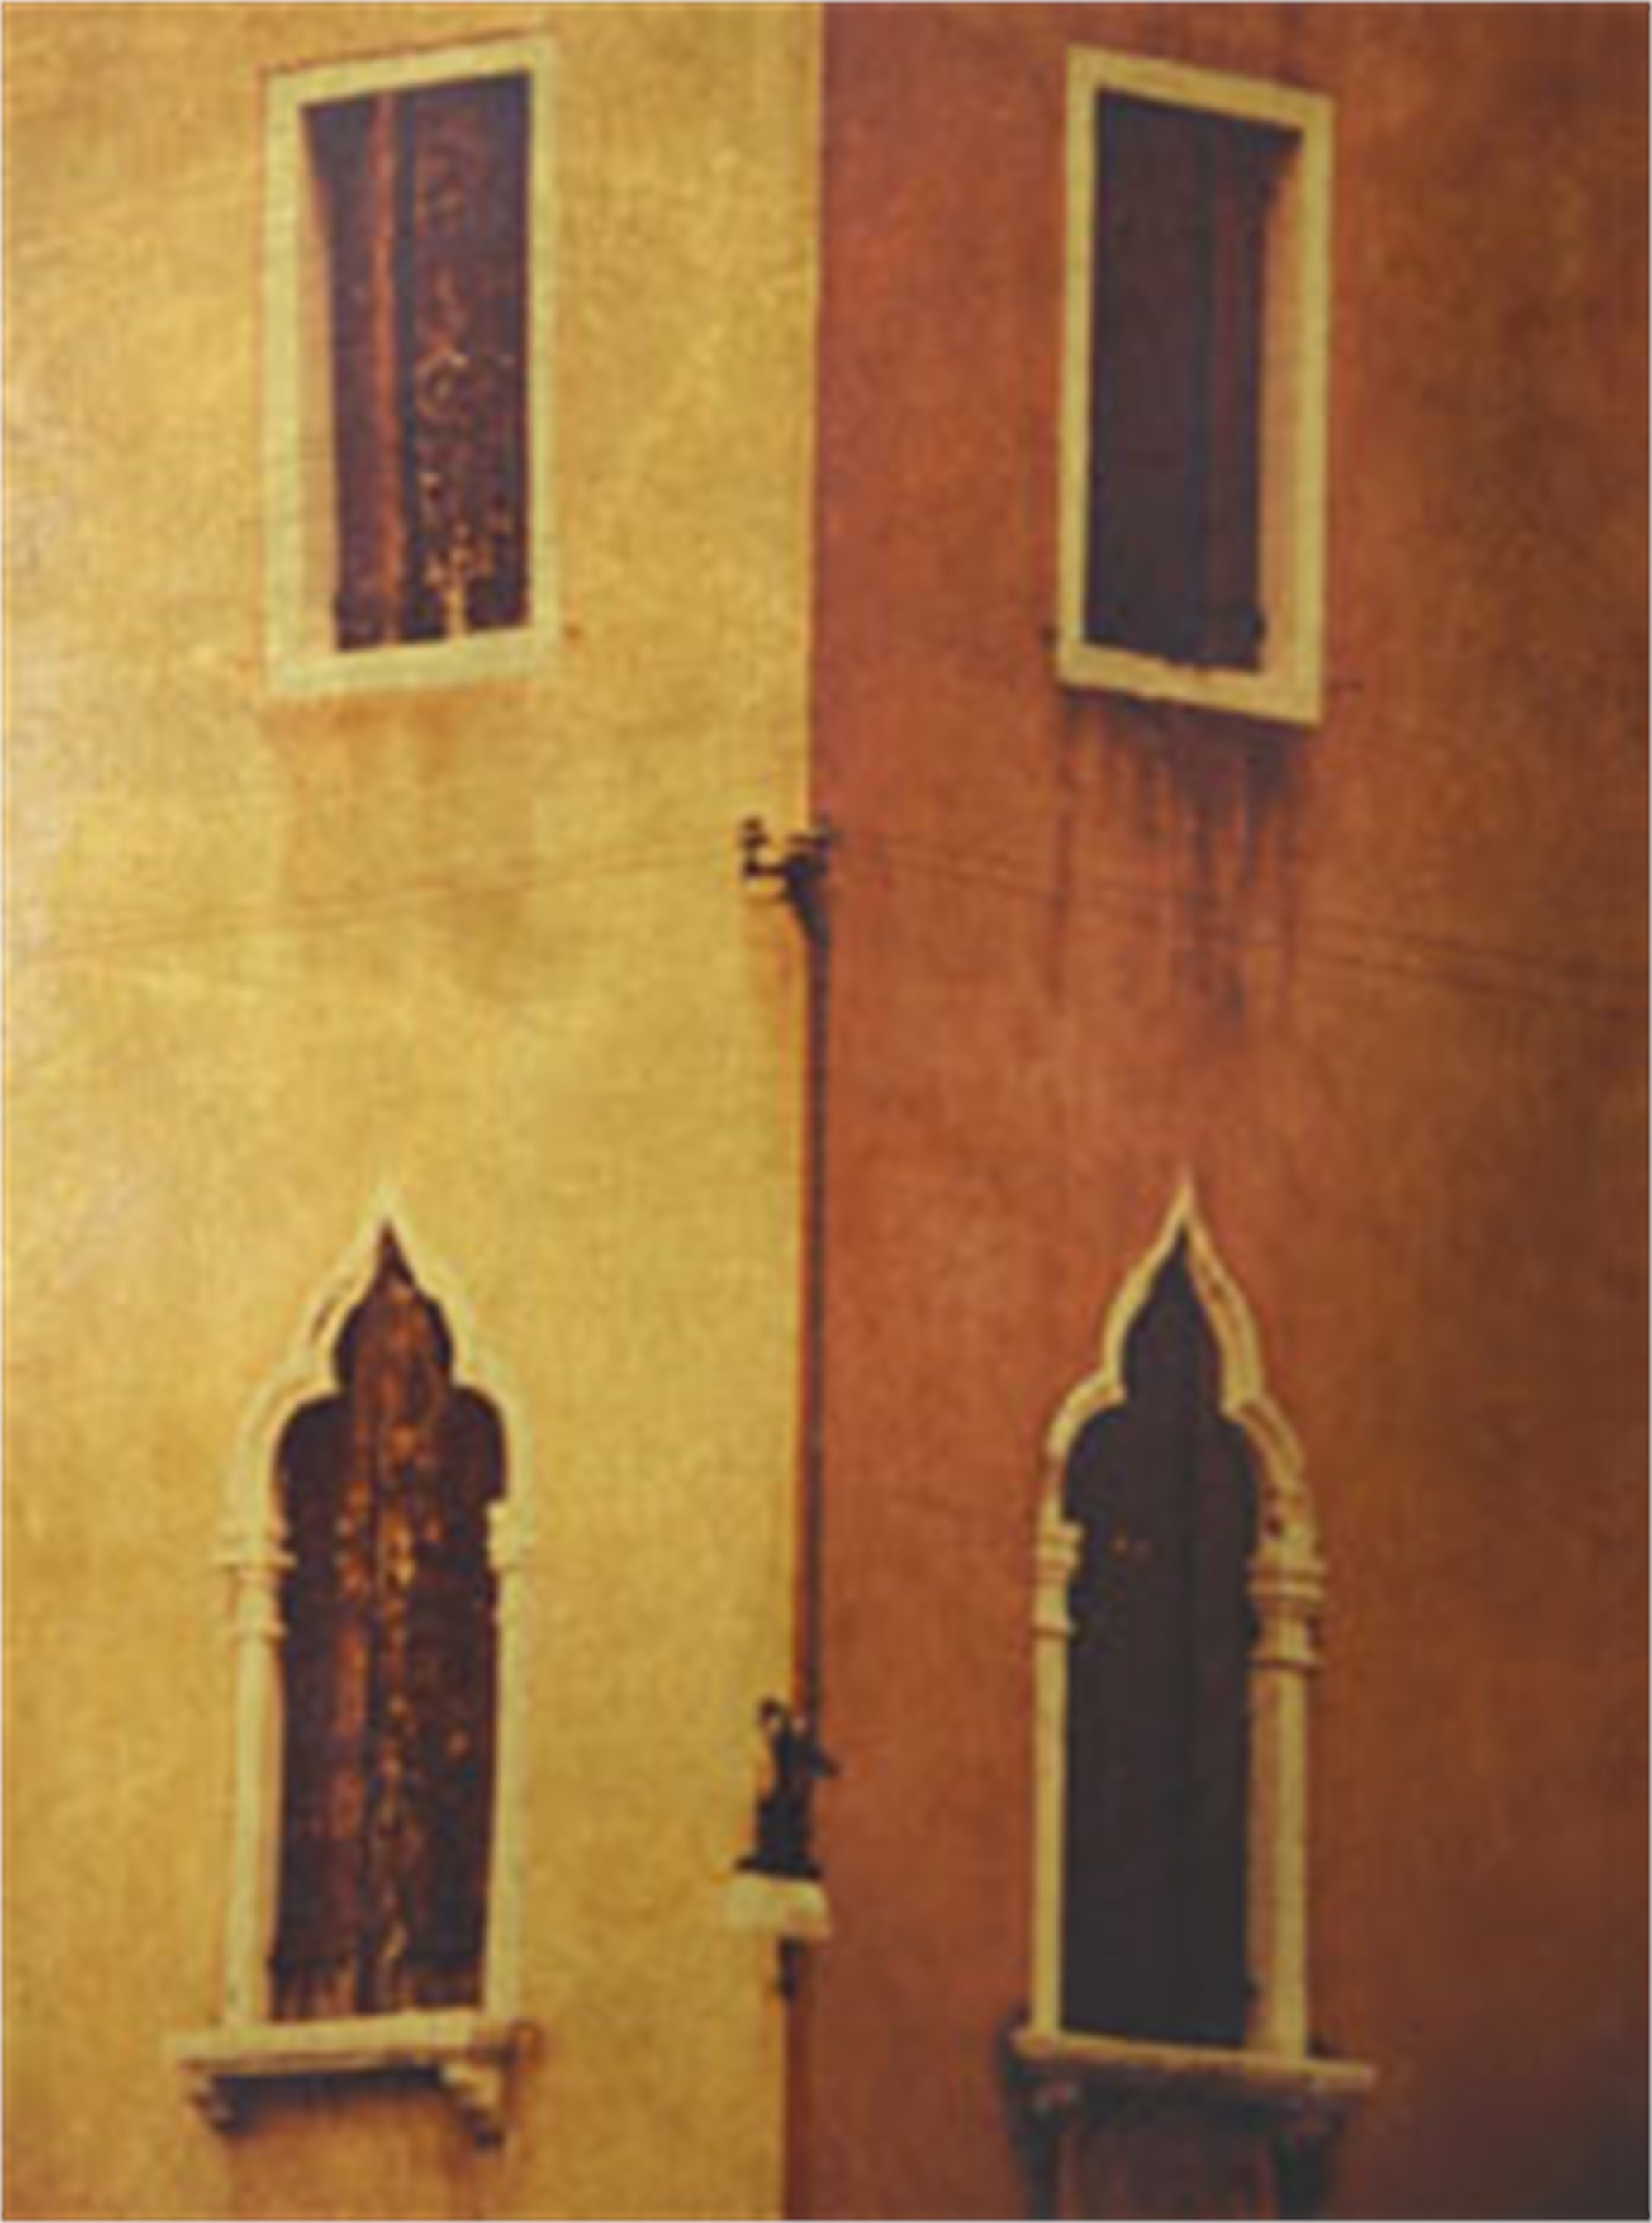 Venice #1 by Patty Mulligan